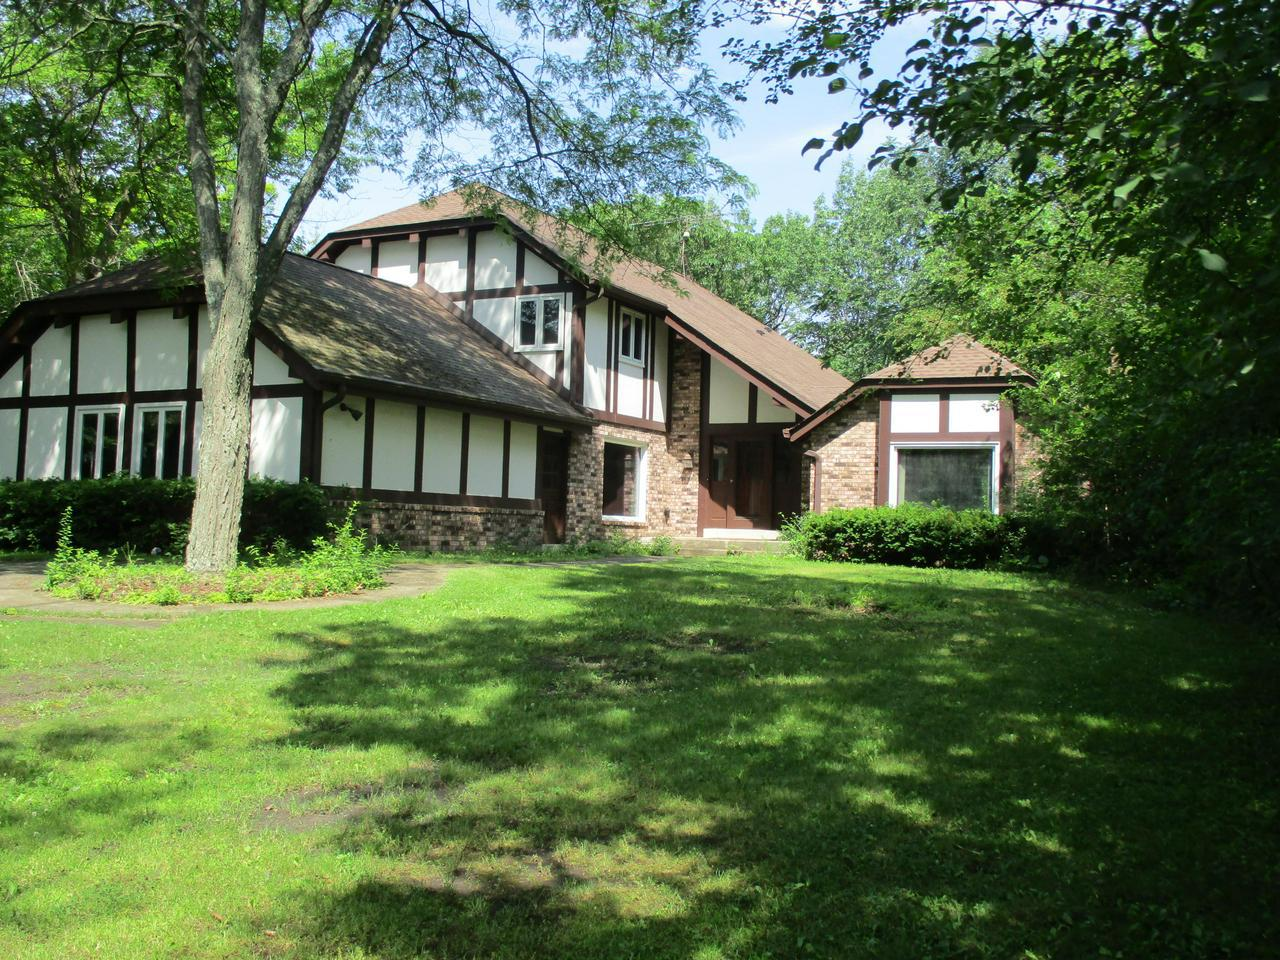 Updated Tudor on private, wooded 1 acre with large deck to entertain & enjoy nature. Kitchen and main flr laundry beautifully updated in 2017. Stone fireplace in freshly painted FMR & HWF updated 2016. 2nd FP in elegant LVR with french drs & HWF. Formal DR w/ HWF's has large window overlooking front yard. Huge main floor den w/ BIBC. Large MBR offers 2 WIC's & tiled ba with shower. Main ba updated 2013 and powder room 2014. Upper bedrooms are generous size. Extra spacious LL has partially finished rec rm. See Sellers' list of updates for information on all the updates done.